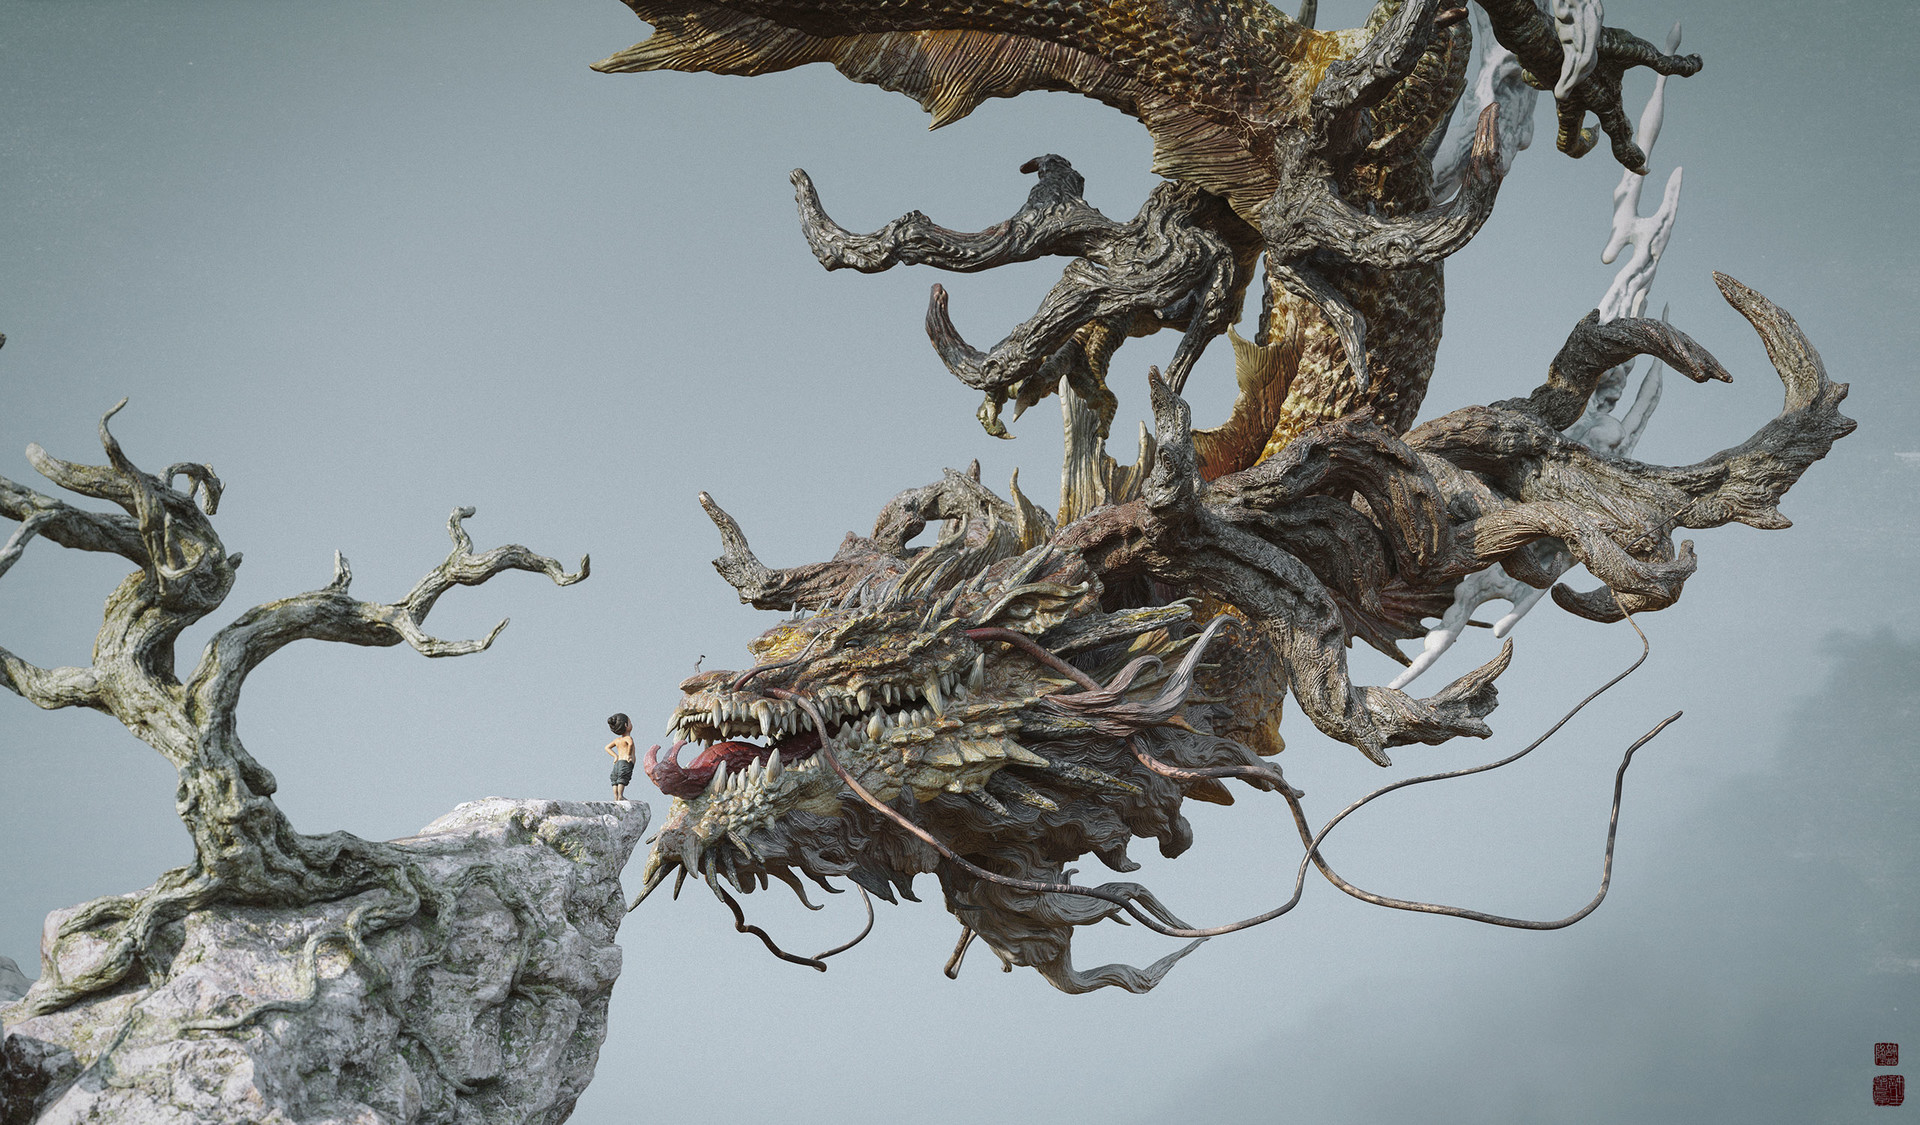 Zhelong xu boy face to the dragon web02